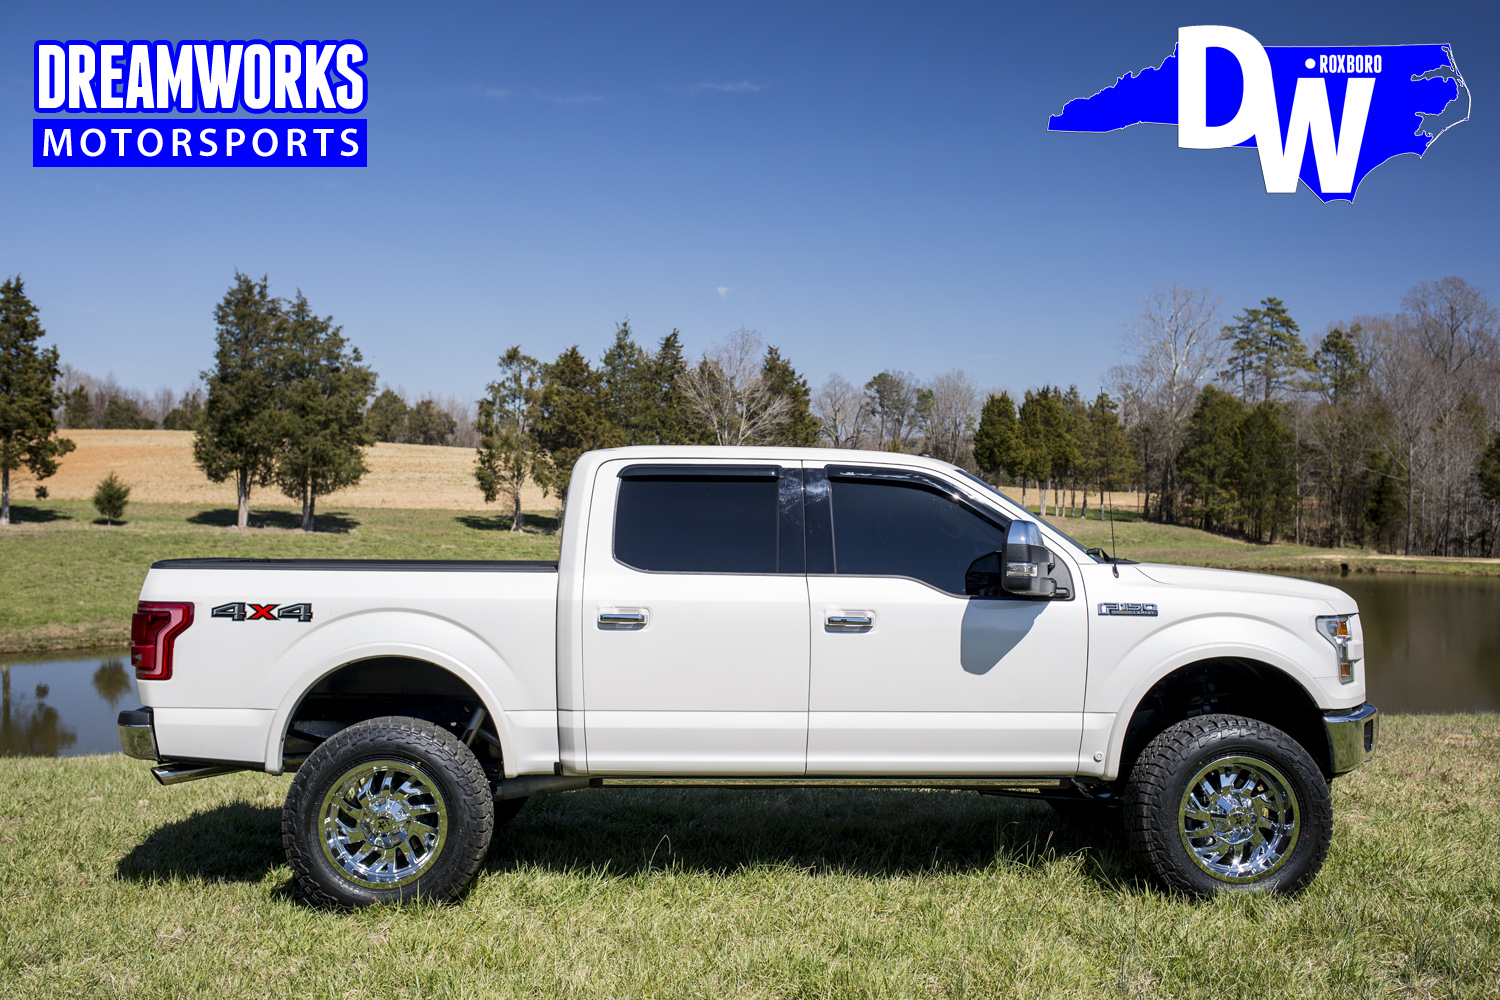 Ford_F150_By_Deamworks_Motorsports-9.jpg